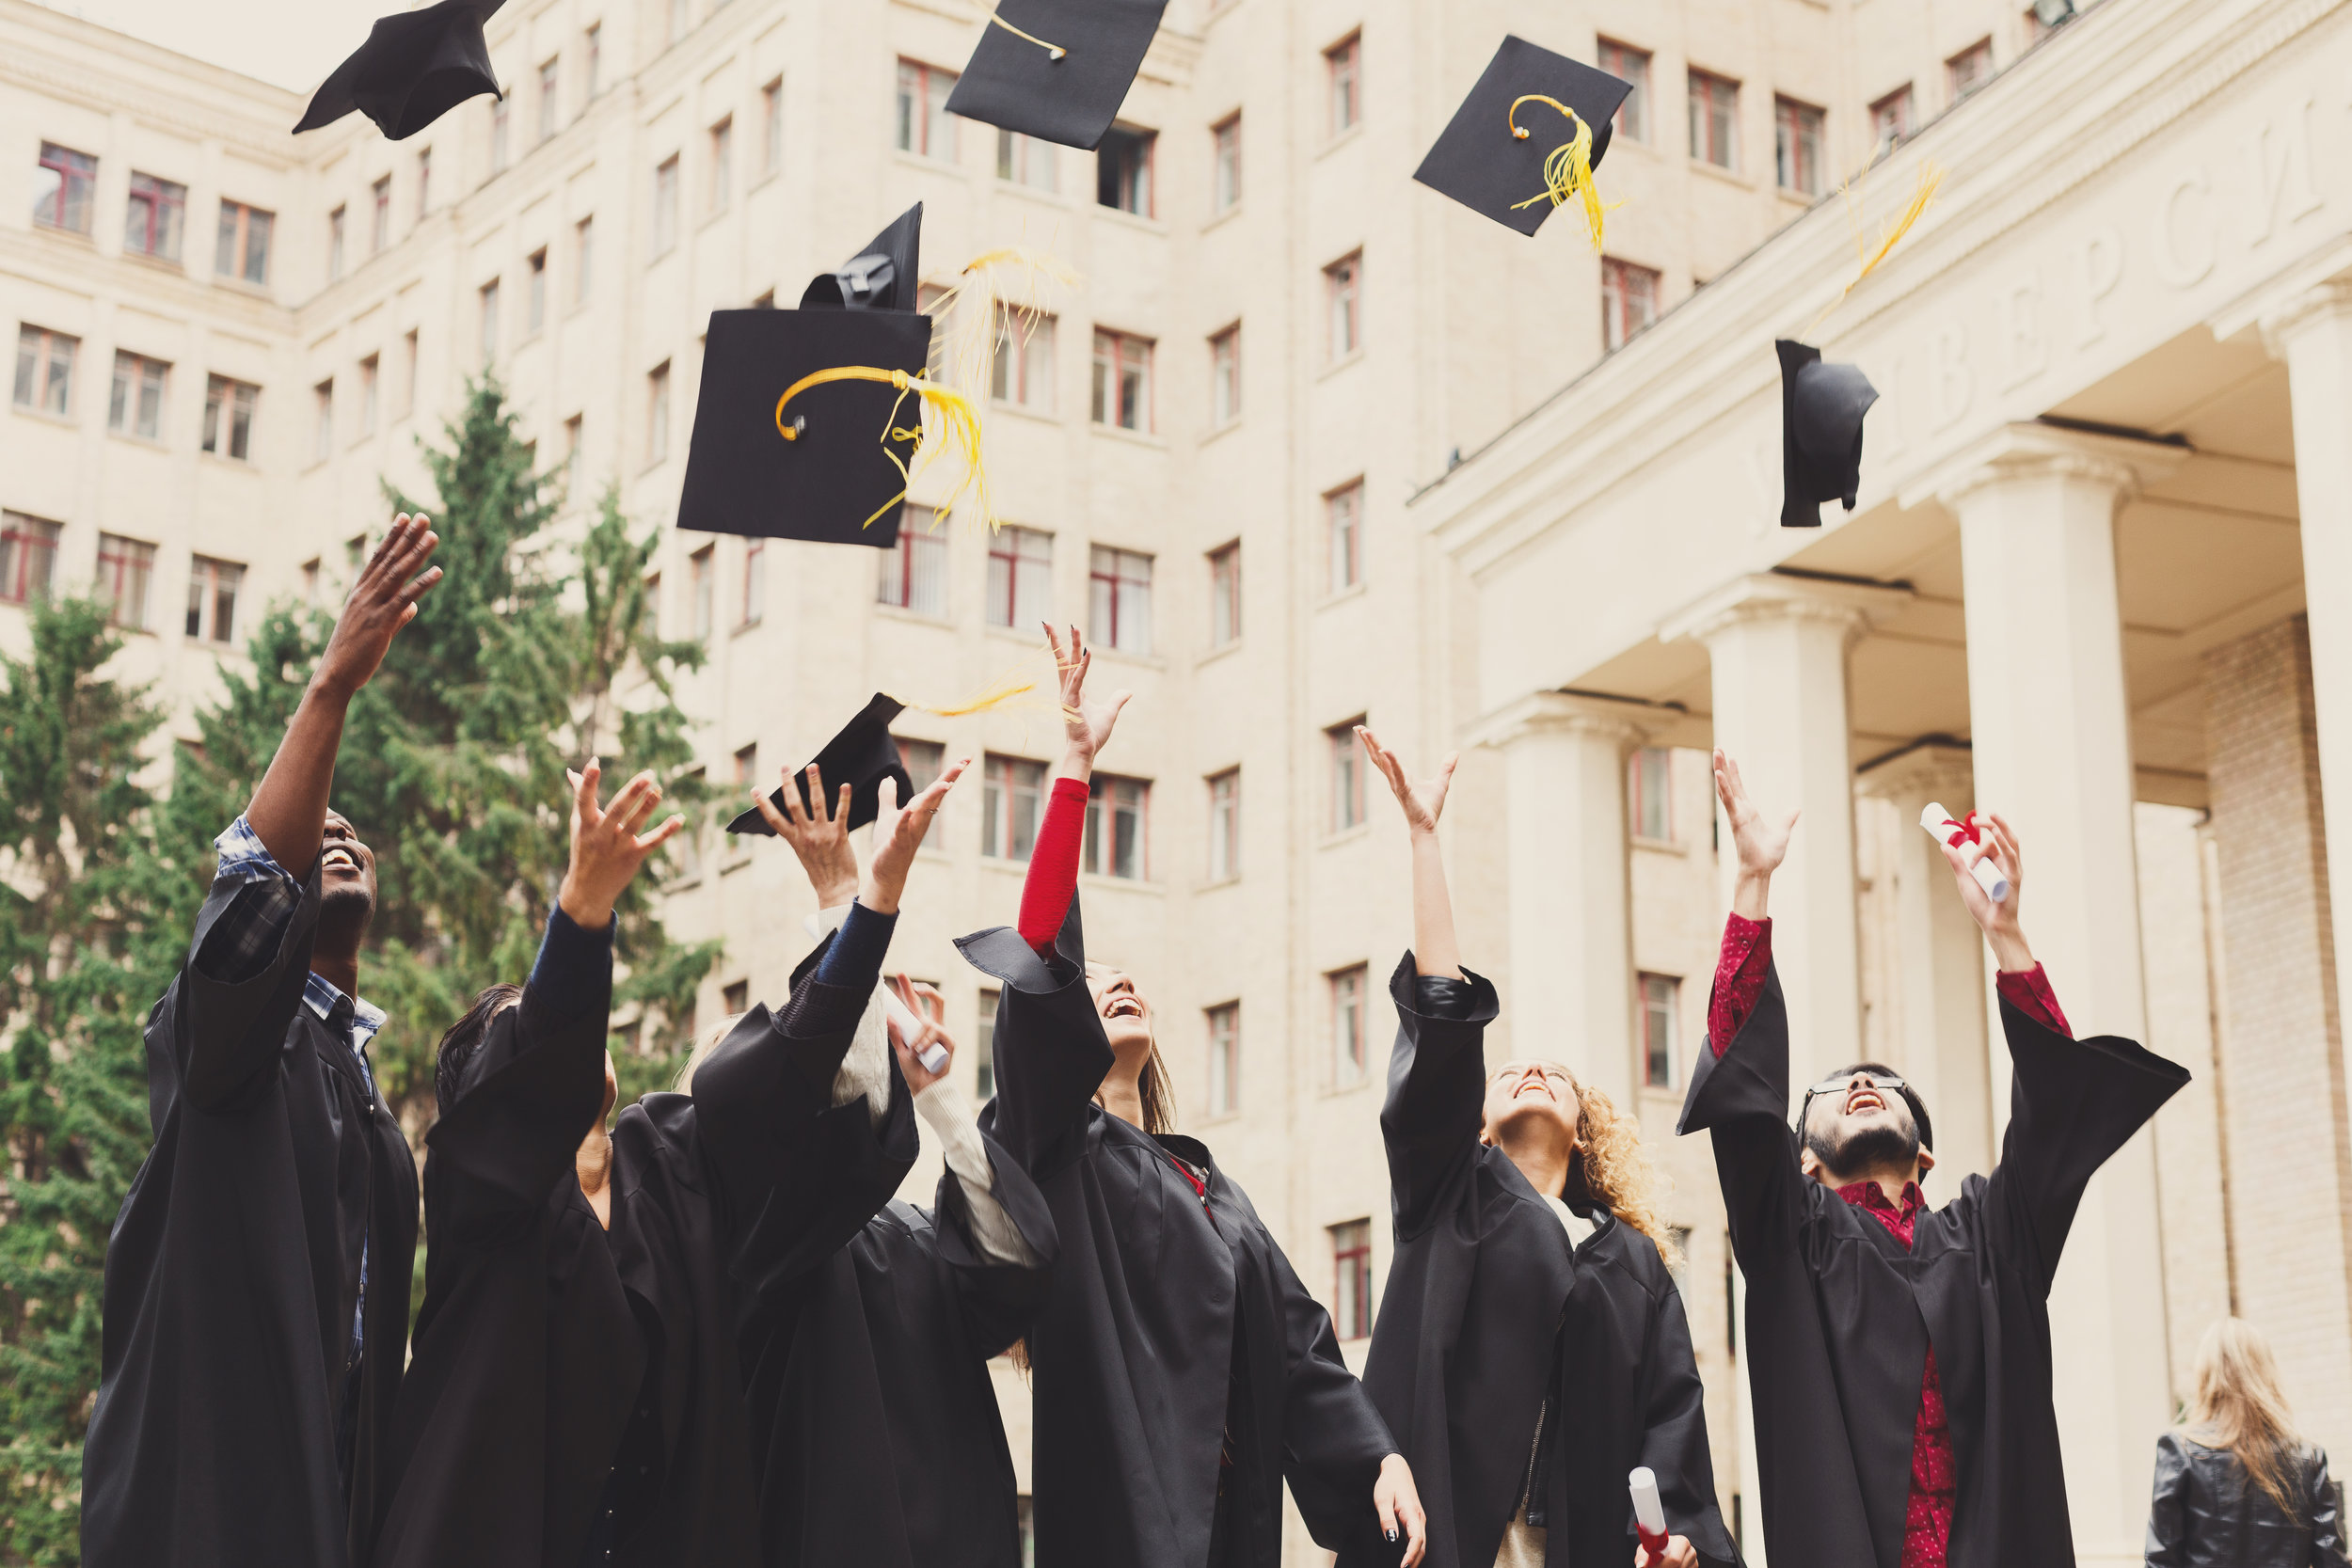 a-group-of-graduates-throwing-graduation-caps-in-72VH46X.jpg